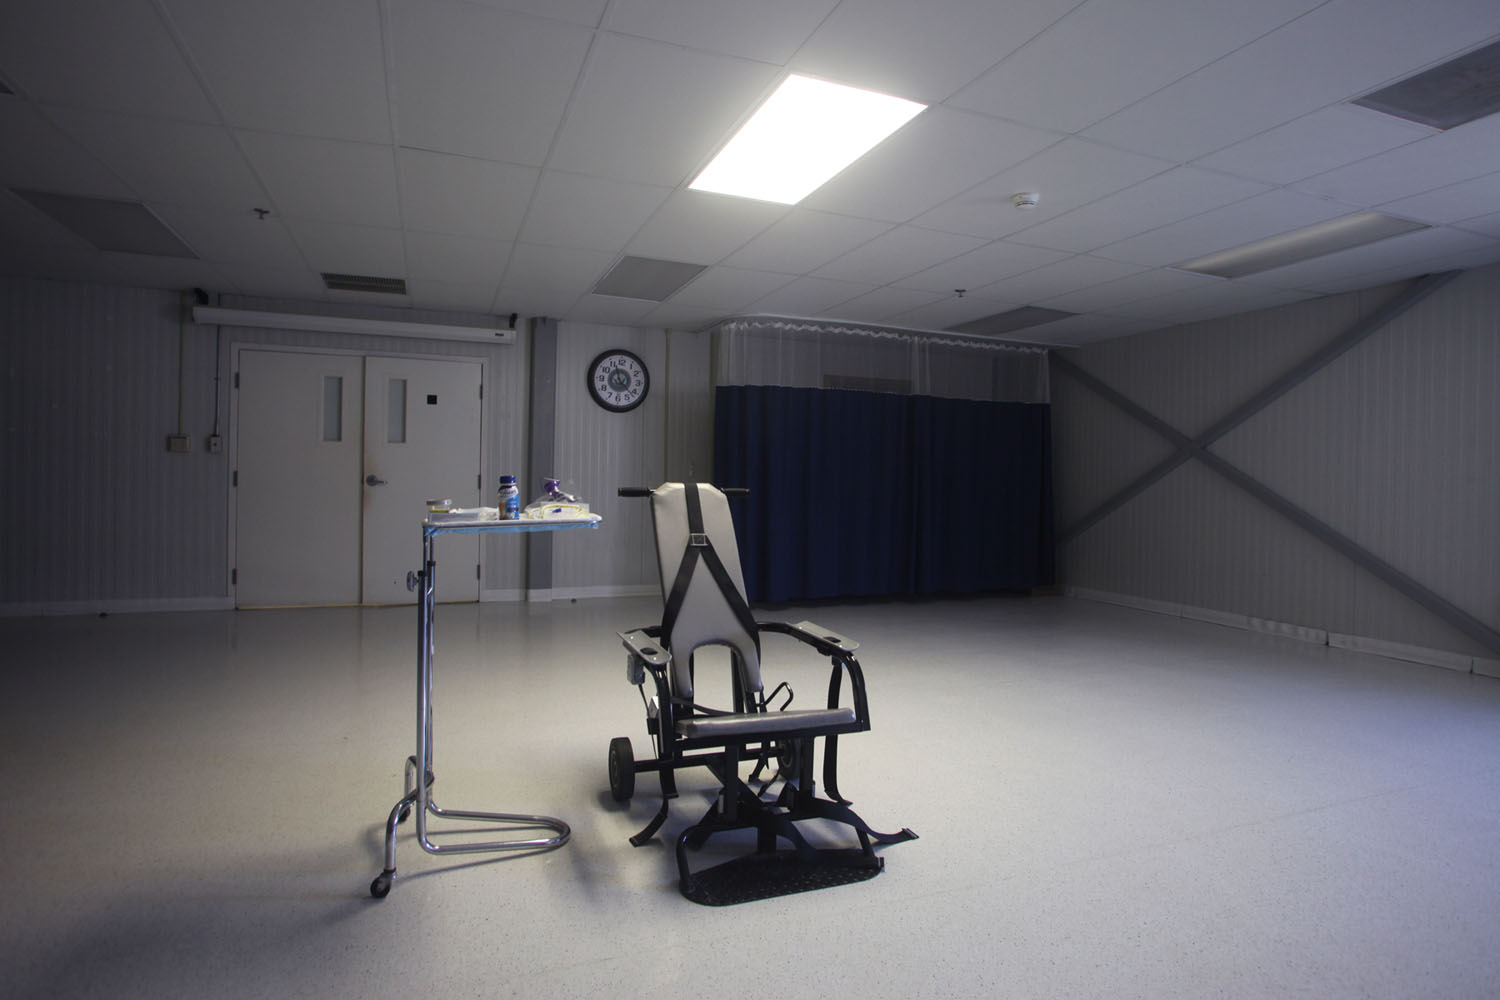 A restraining chair and force-feeding apparatus on display in an empty room of the detainee hospital.